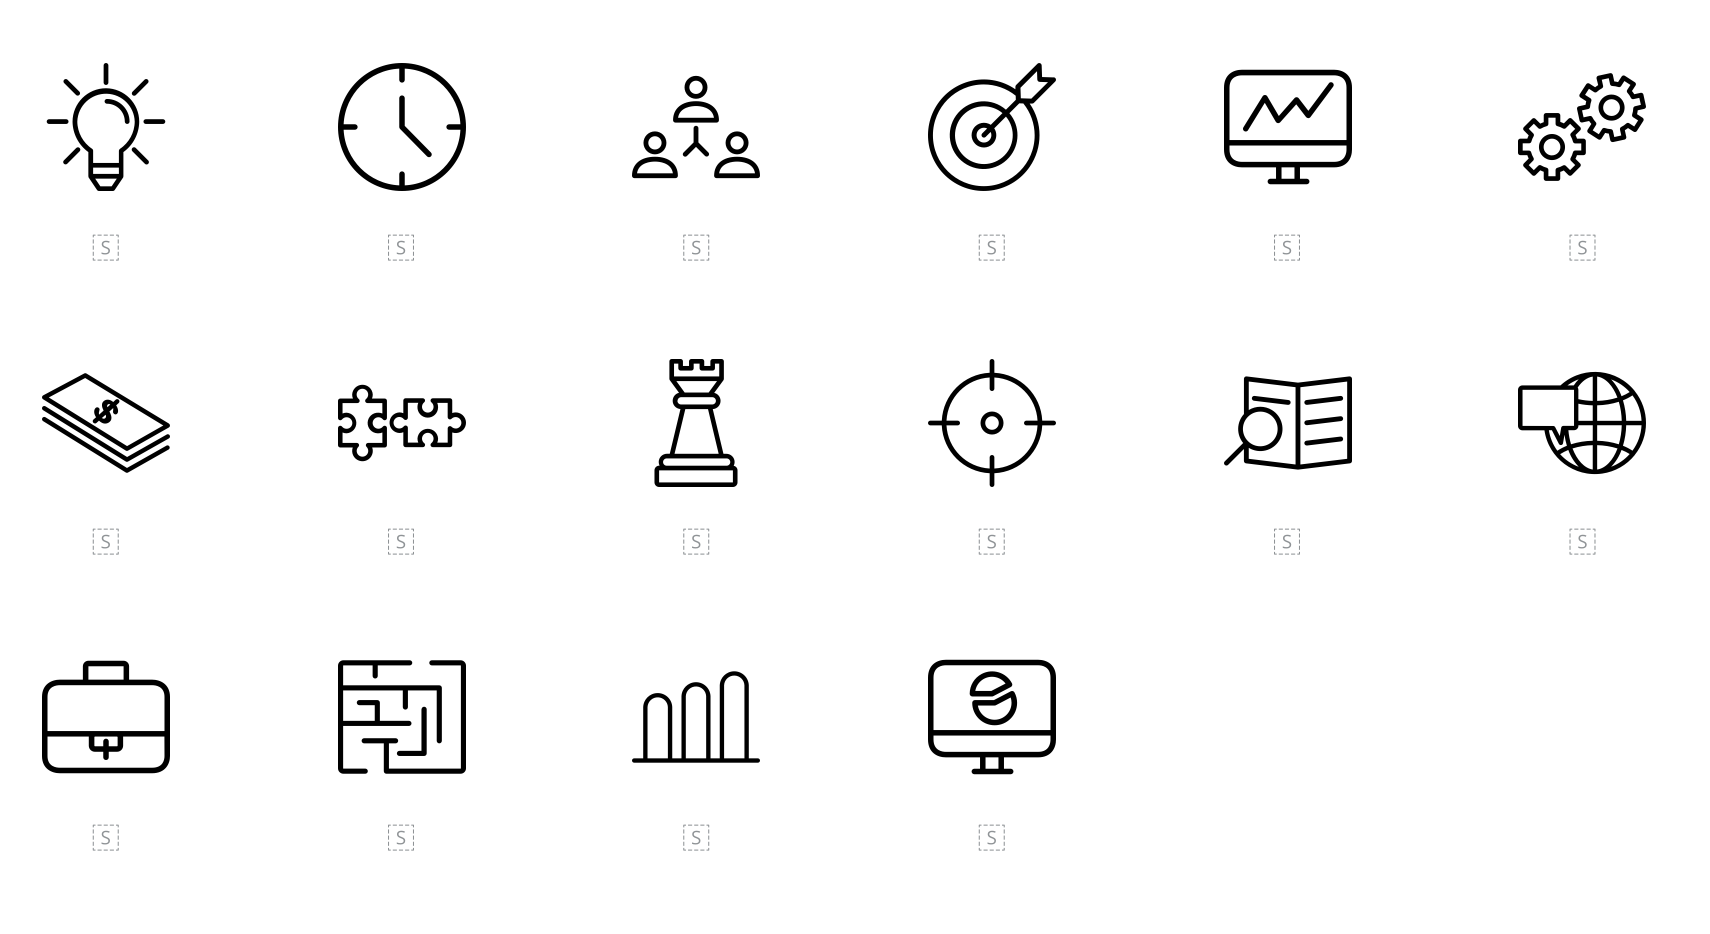 A screenshot of free icons from Flaticon